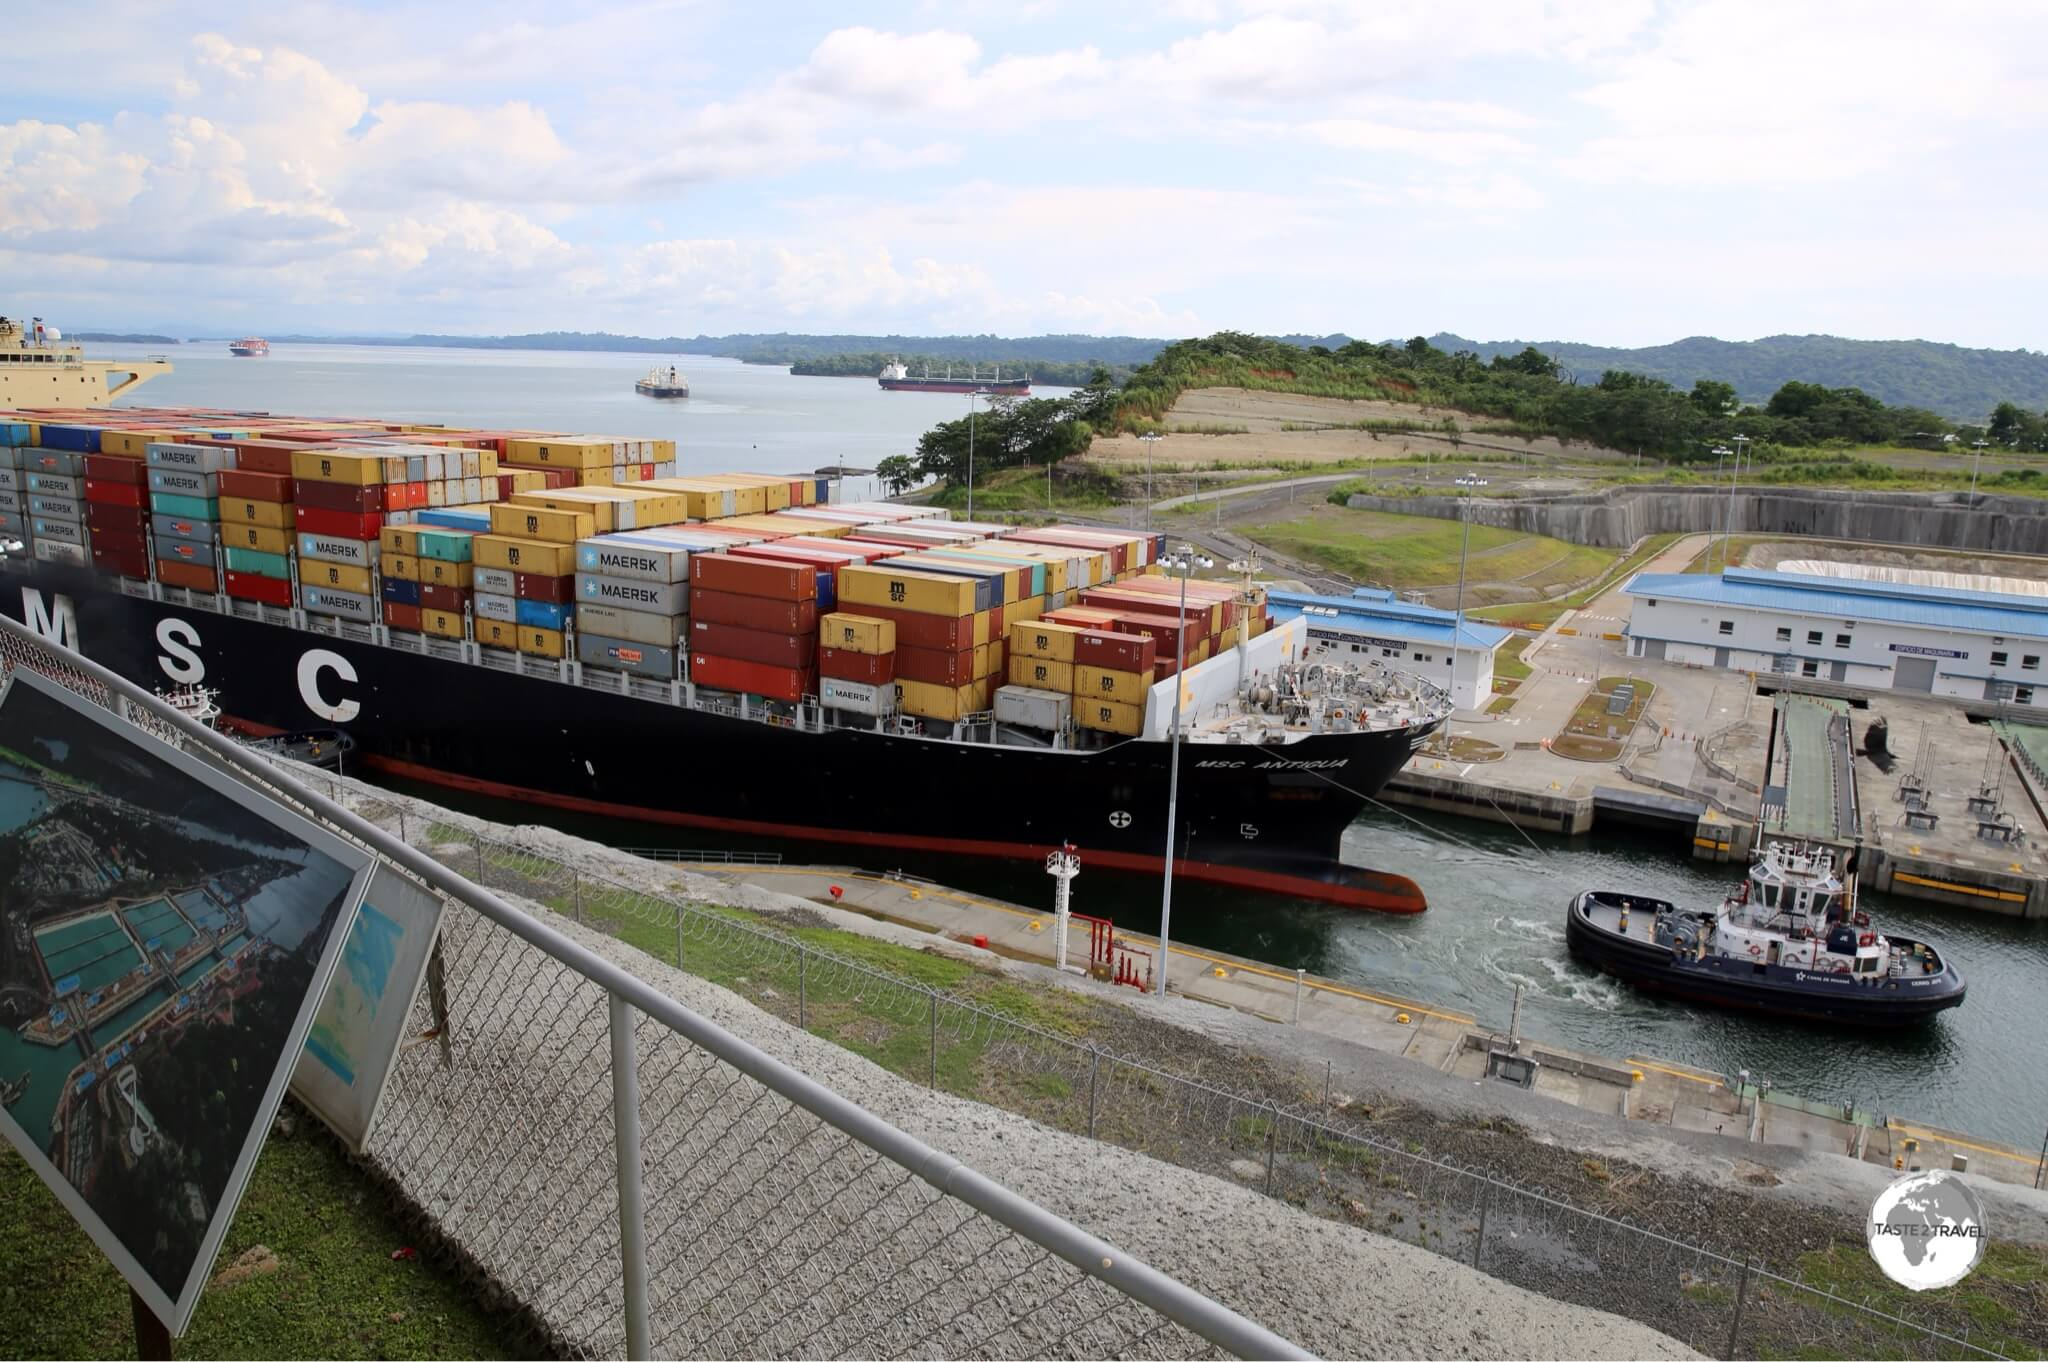 The gigantic MSC Antigua entering Lake Gatun locks.